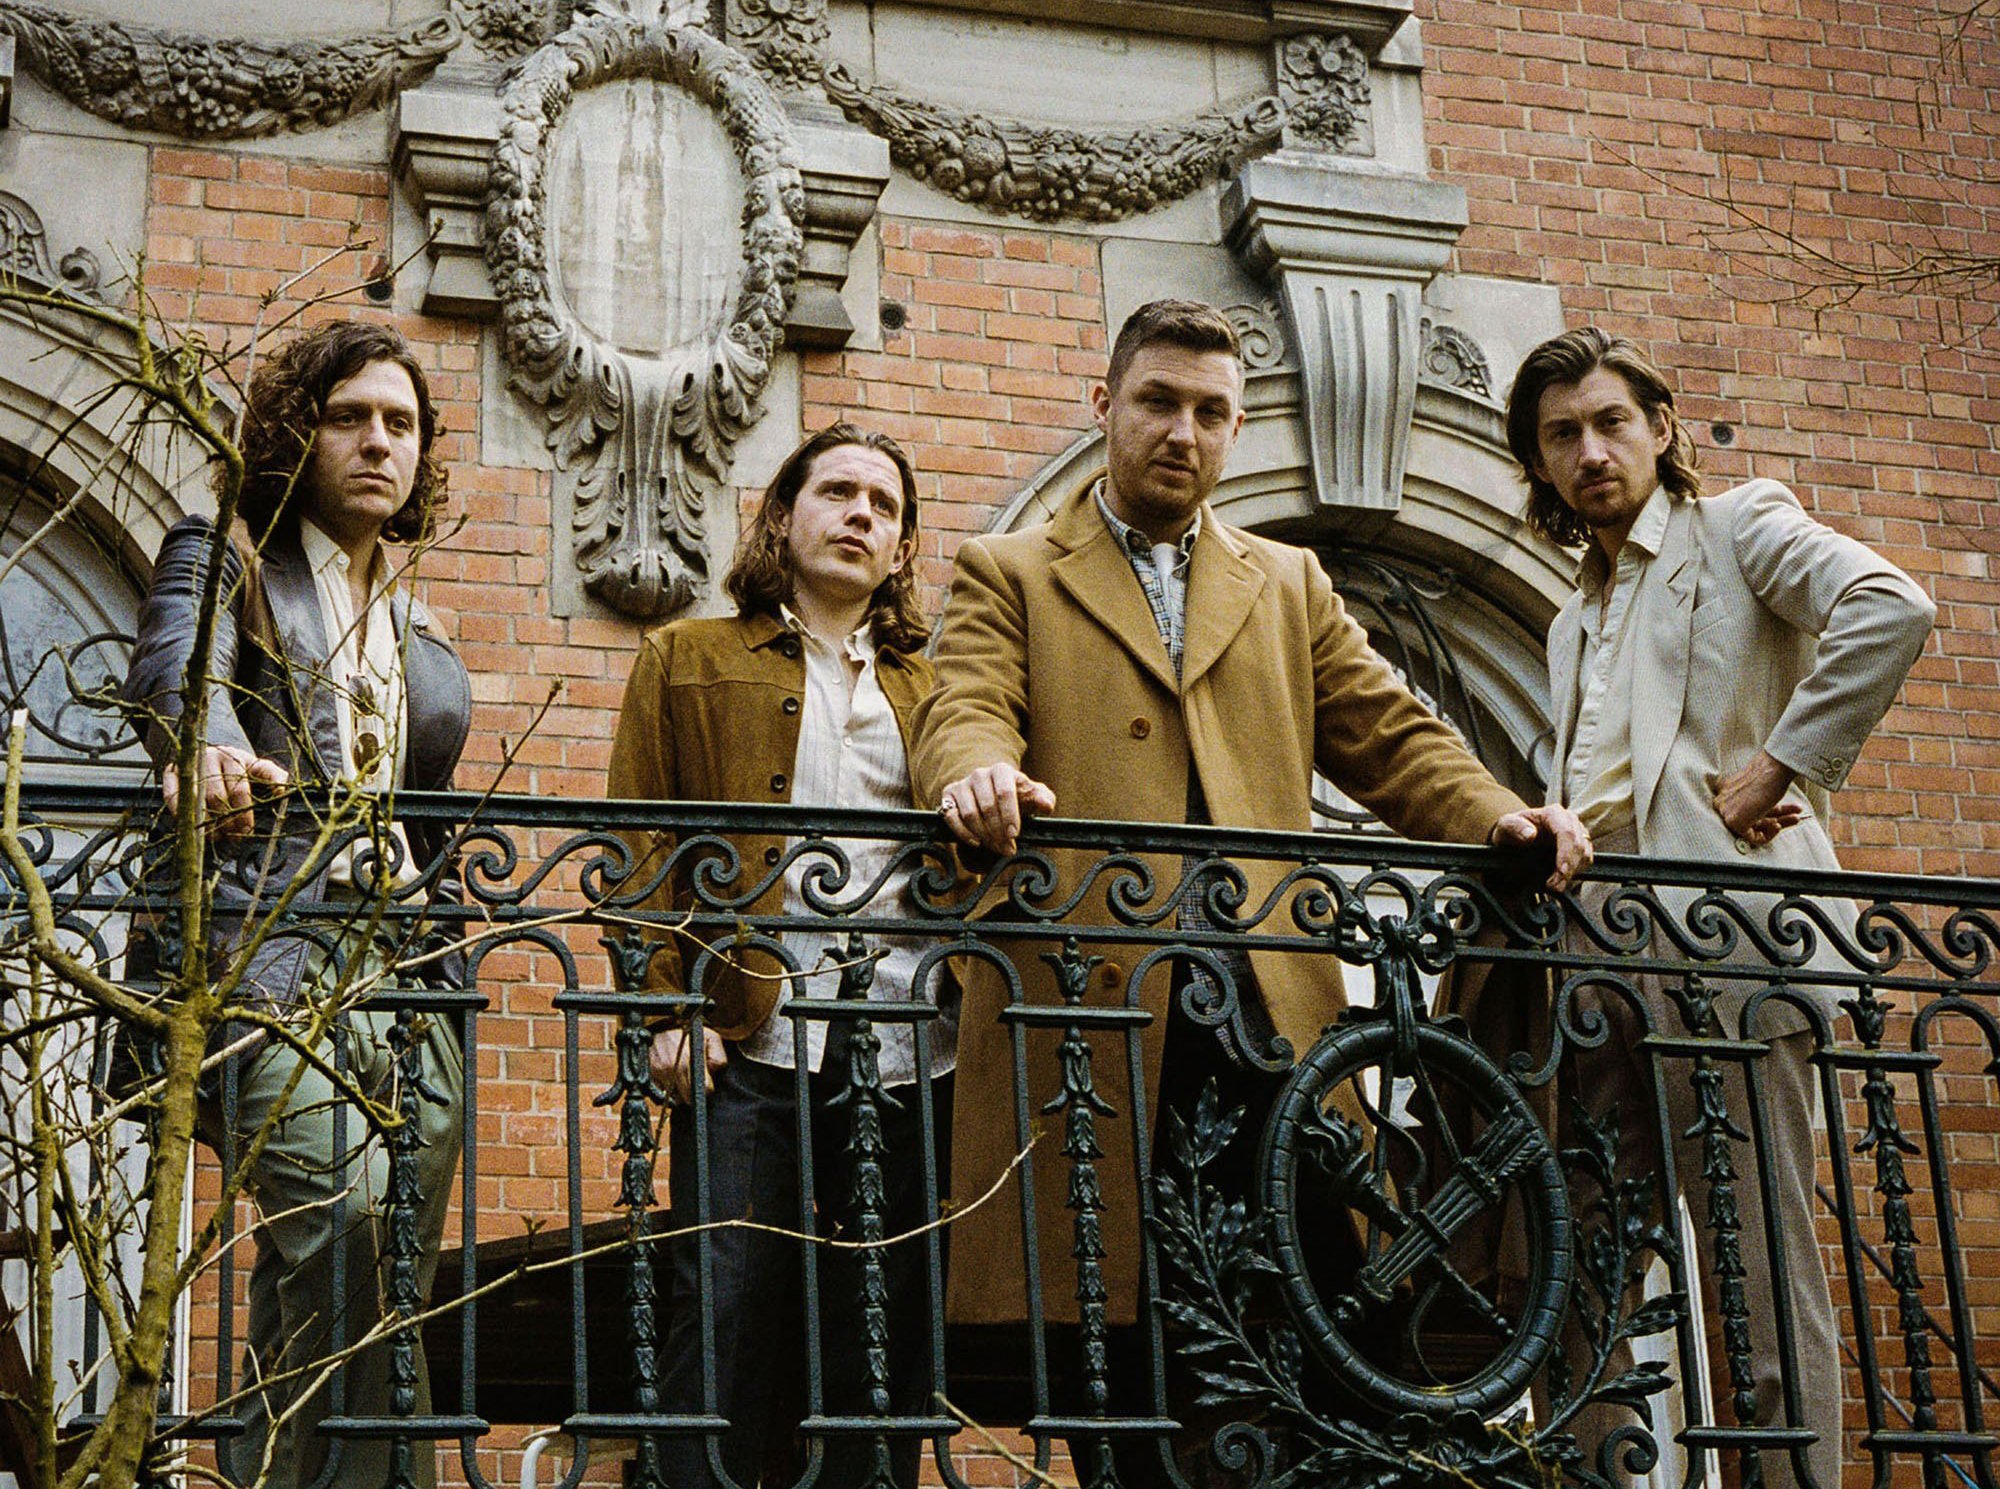 Arctic Monkeys, Janelle Monáe, Dua Lipa and more up for GRAMMYs